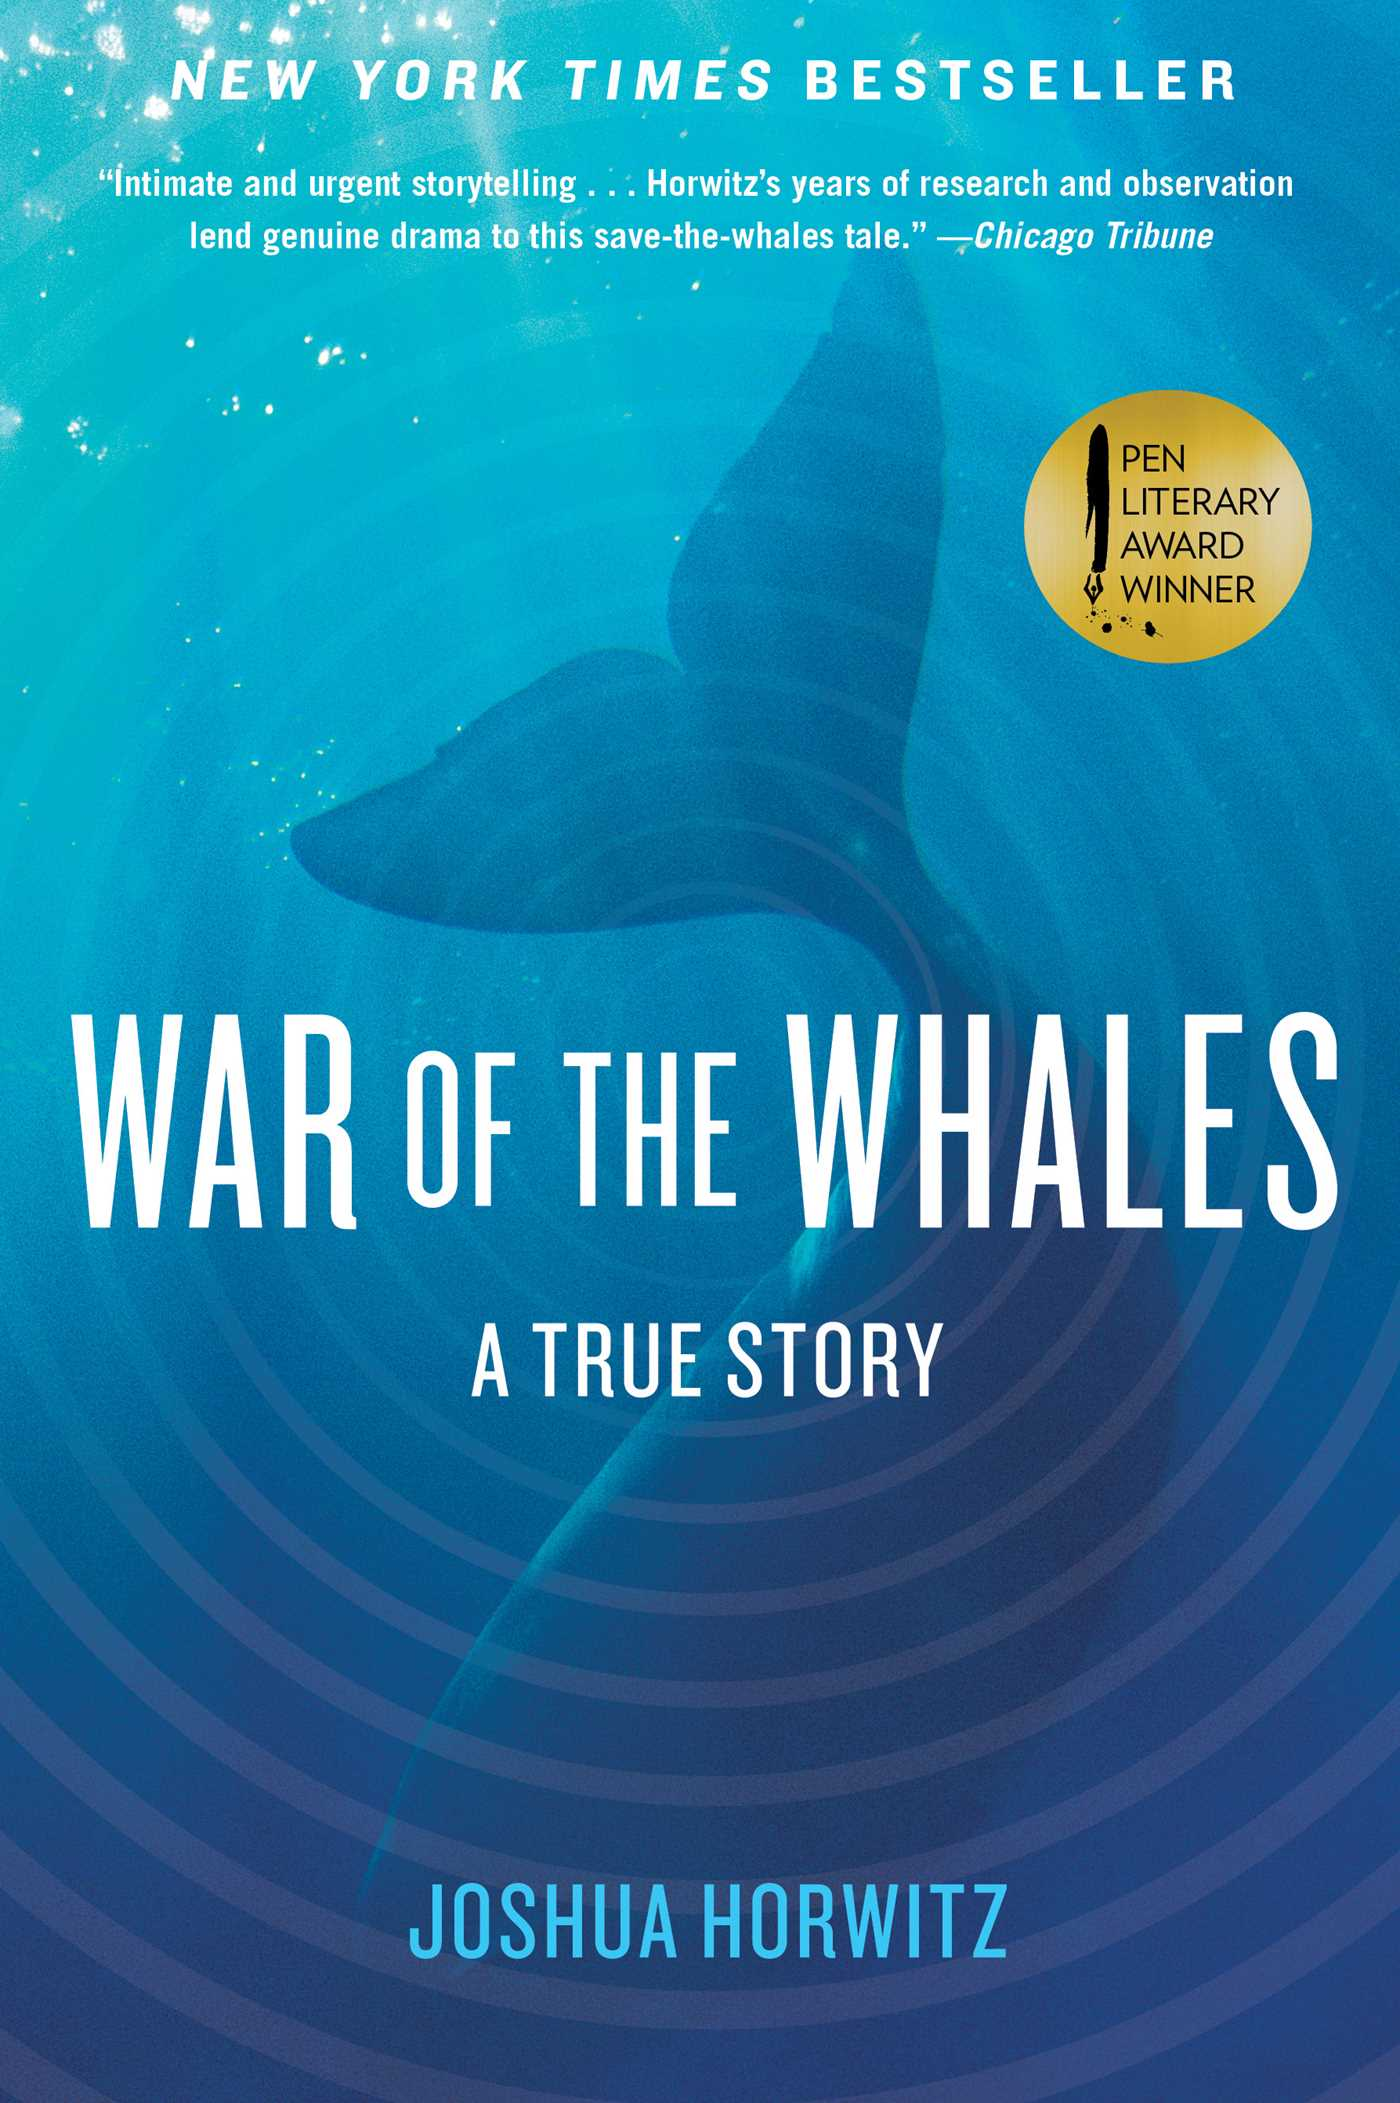 War of the whales 9781451645026 hr